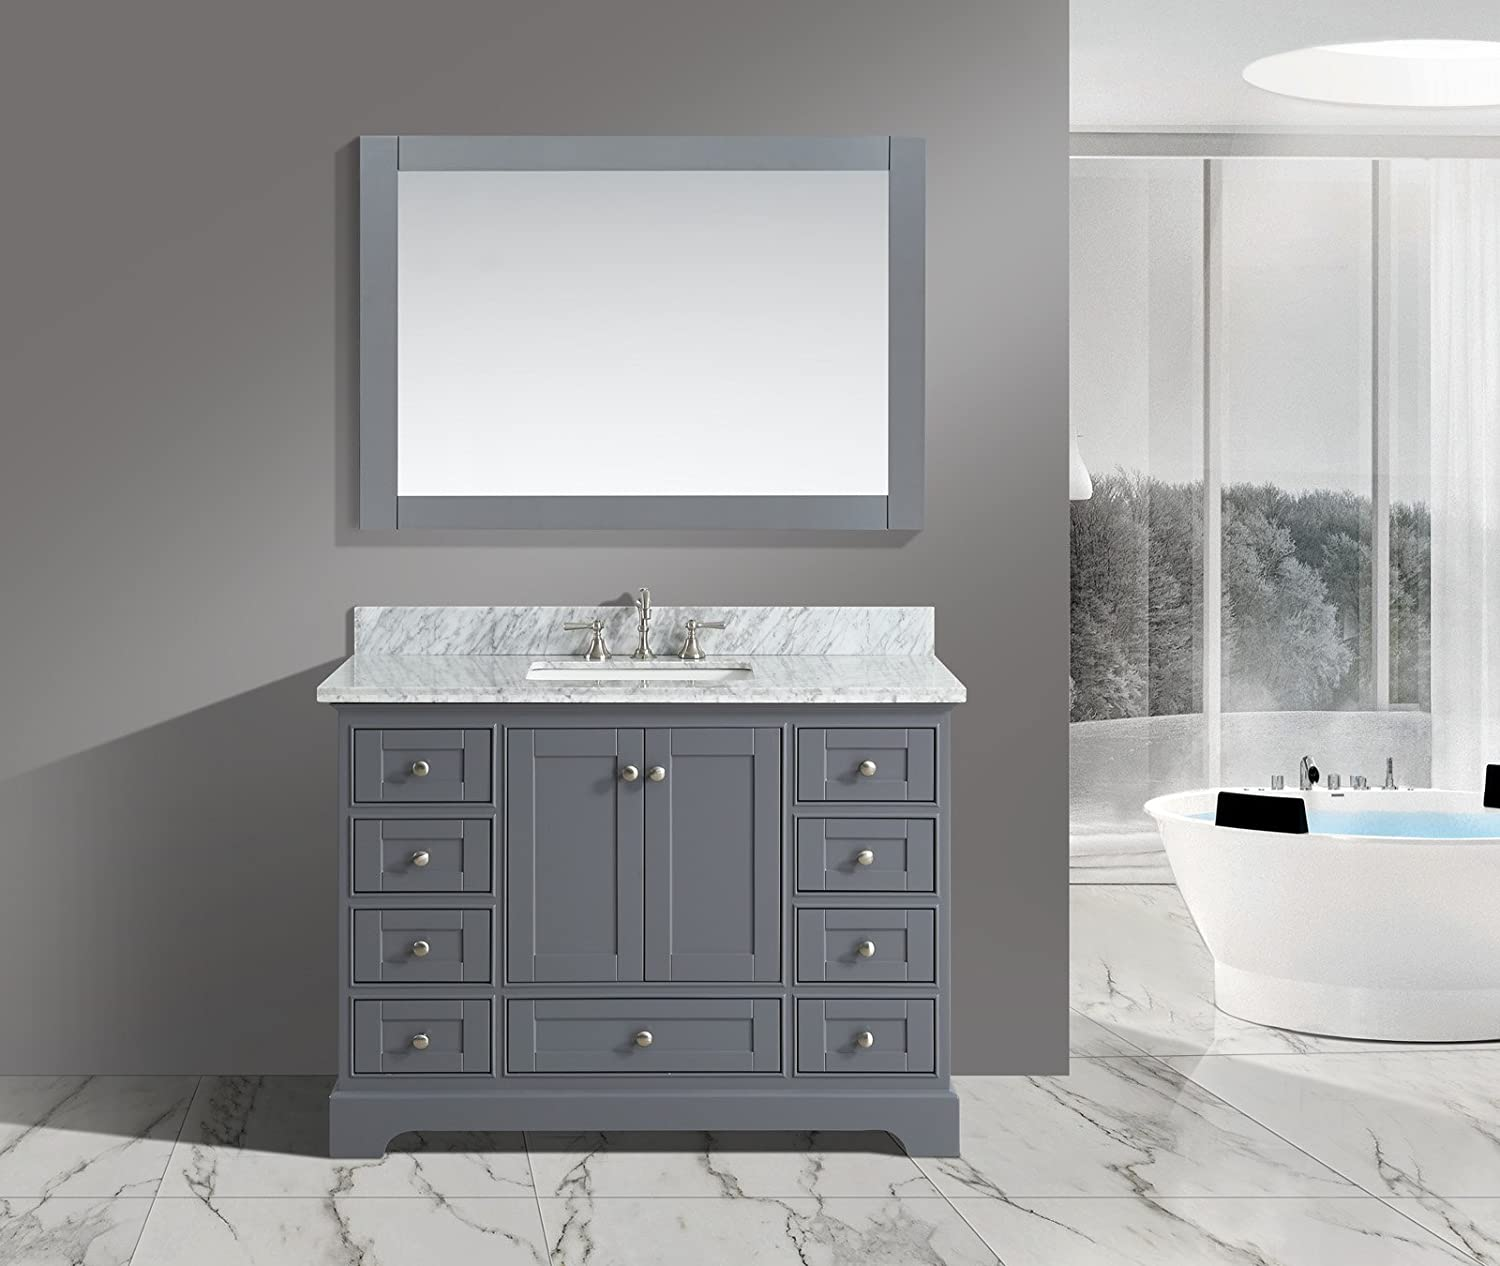 Amazon Com Urban Furnishing Jocelyn 48 Inch 48 Bathroom Sink Vanity Set With White Italian Carrara Marble Top Charcoal Home Kitchen